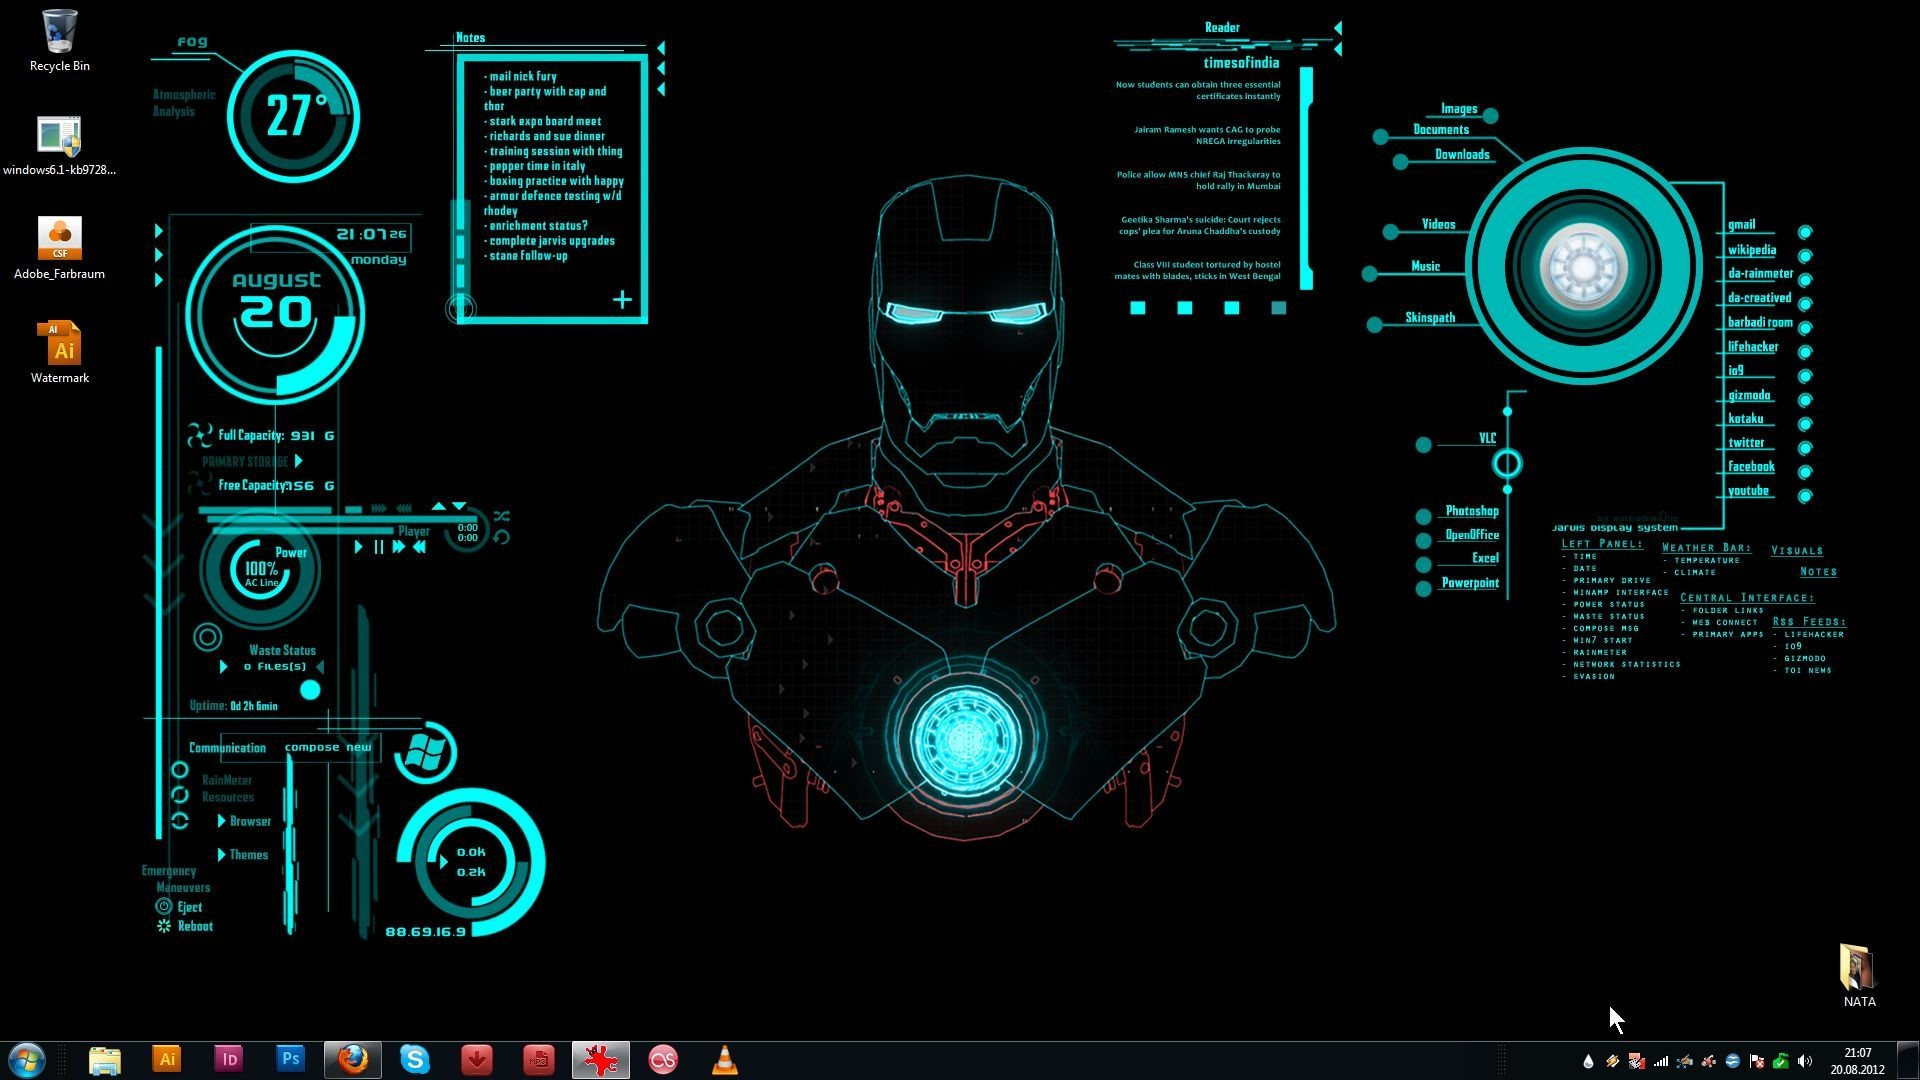 1920x1080 Free Download Iron Man Full Hd Wallpapers Free Download Wallpaper 1920Ã 1080 Iron Man 3